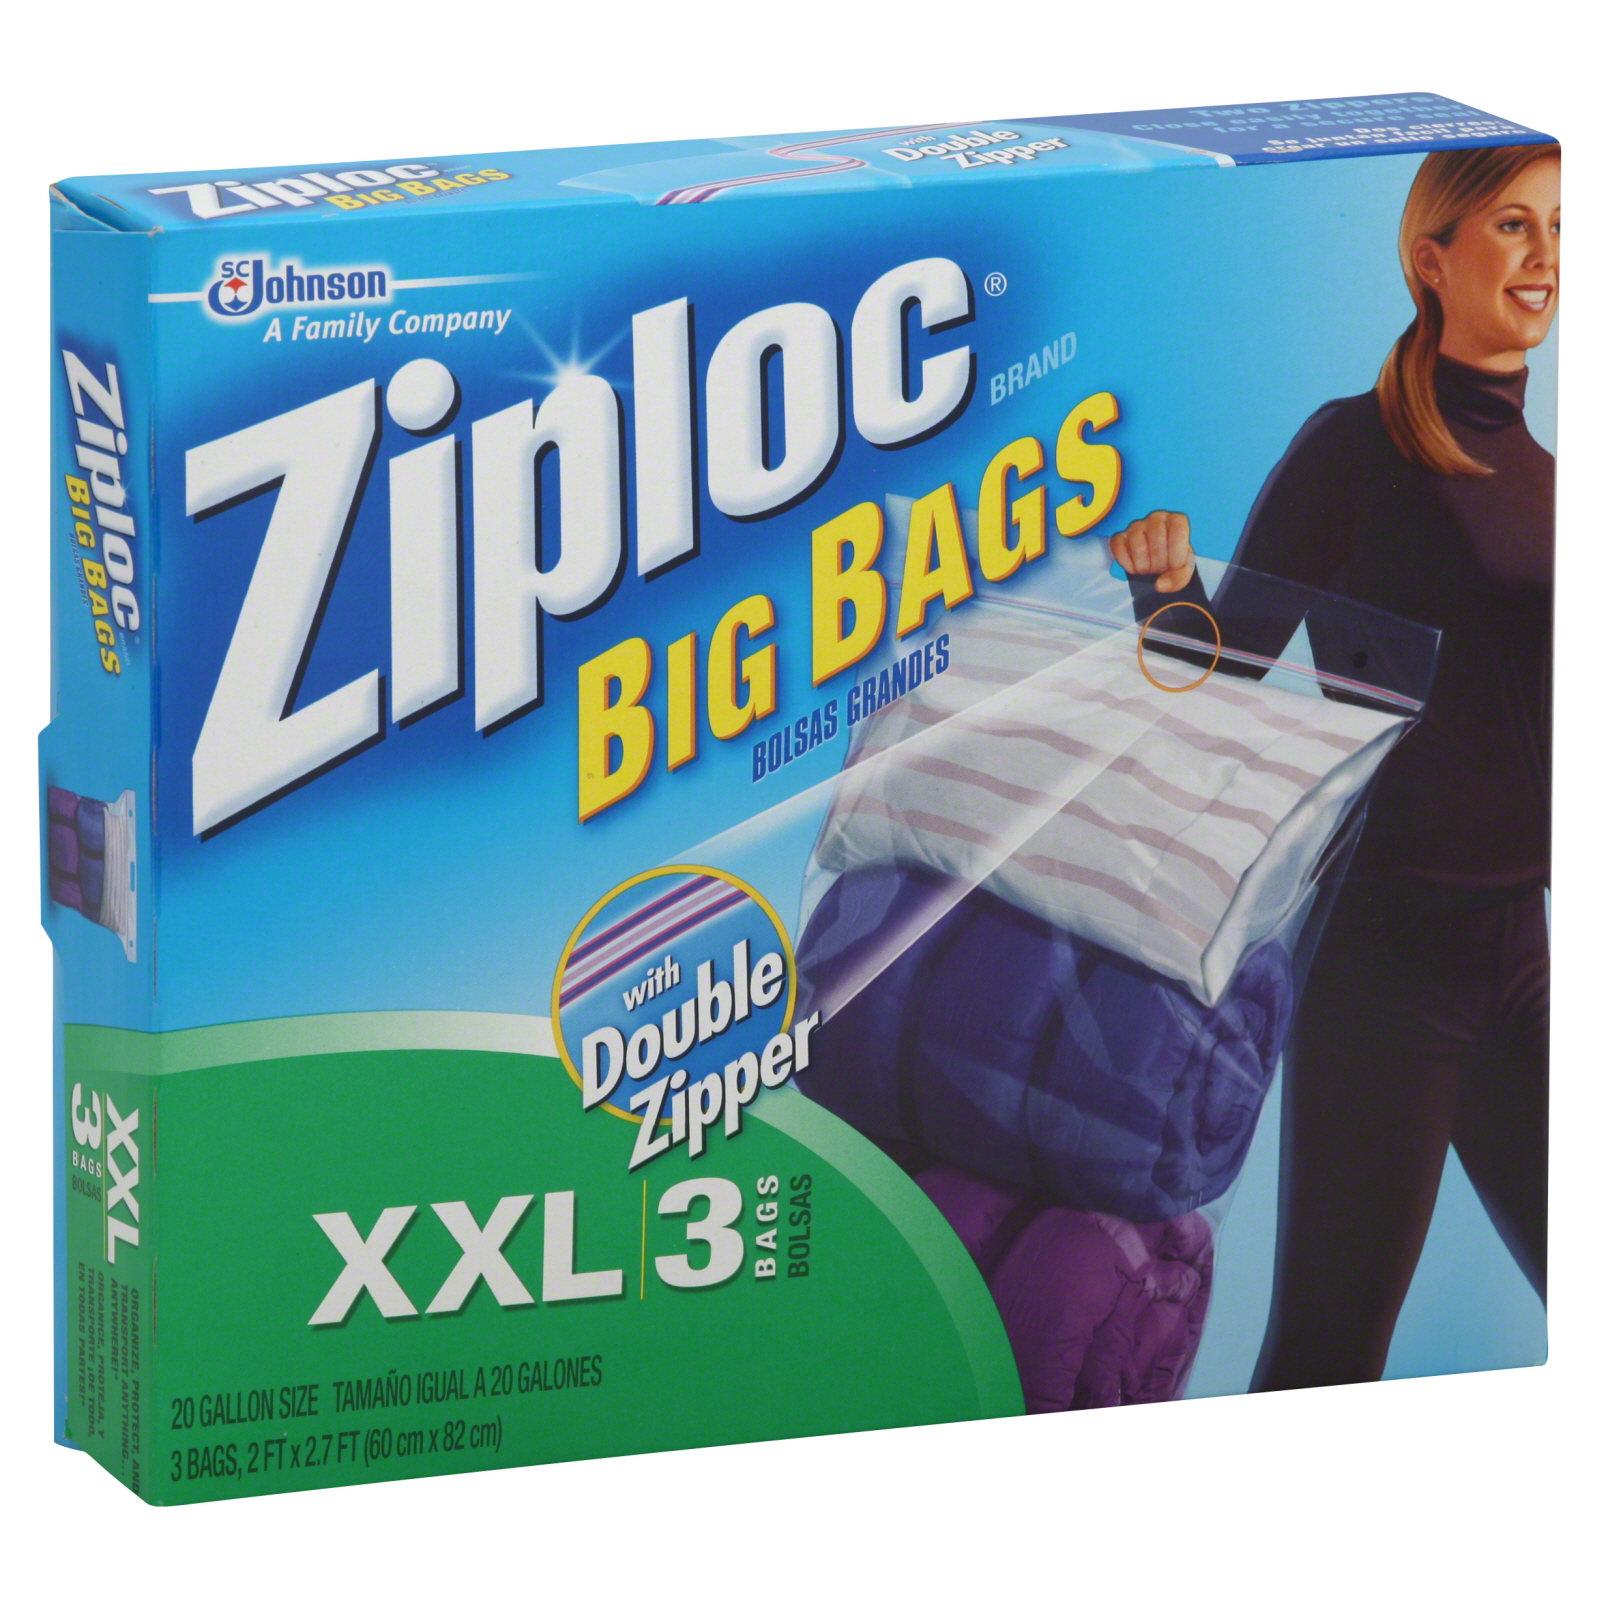 Big Xxl Ziploc Big Bags Xxl Heavy Duty 20 Gallon Size 3 Bags